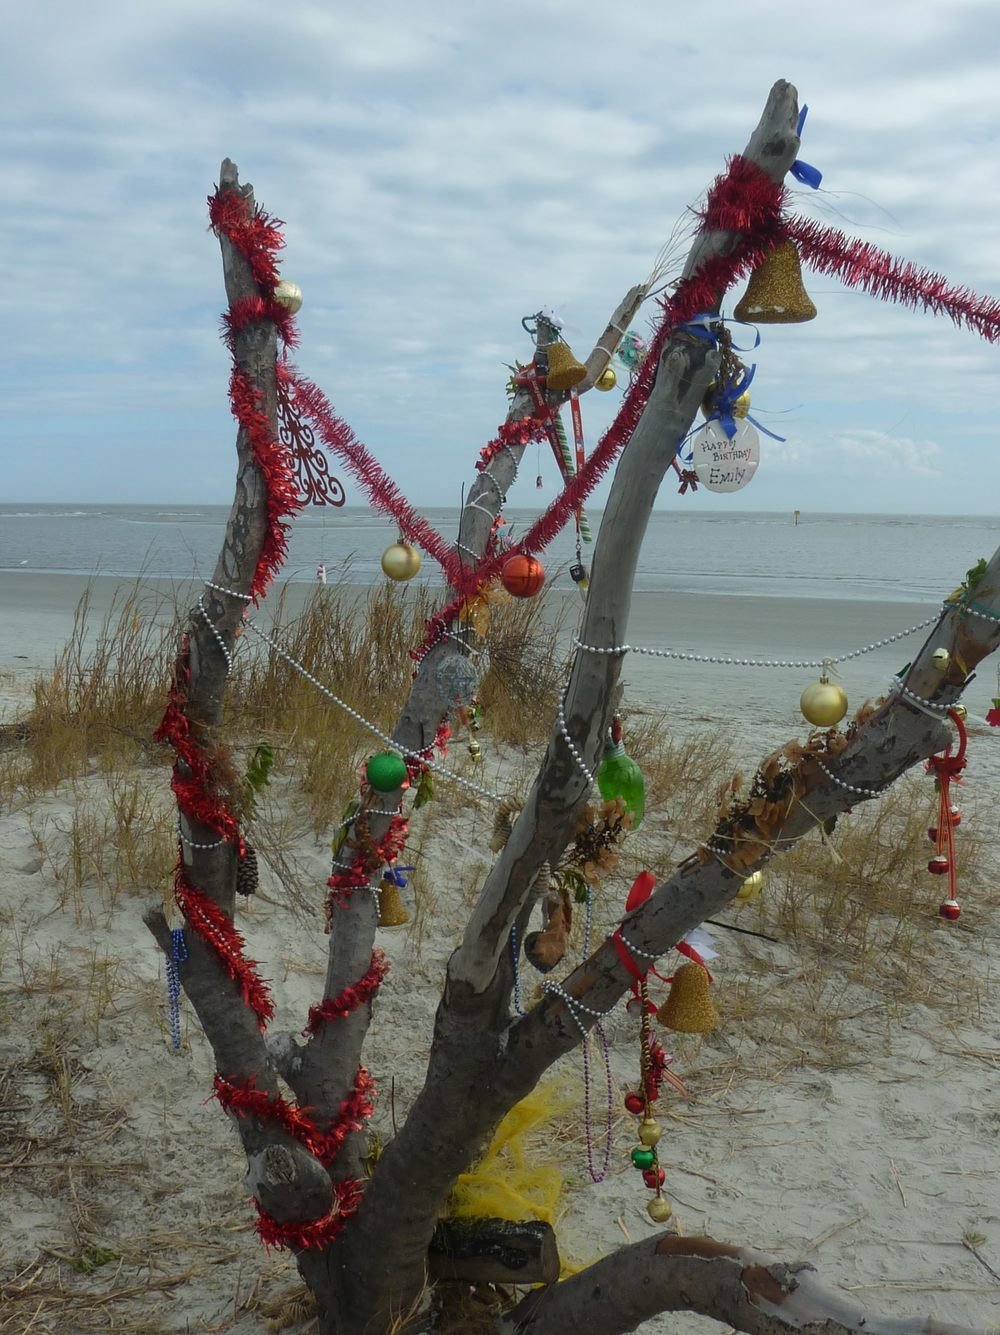 Residents on St. Simons Island, Georgia, decorated a tree on East Beach for the Christmas season Photos by Jackie Bufkin.